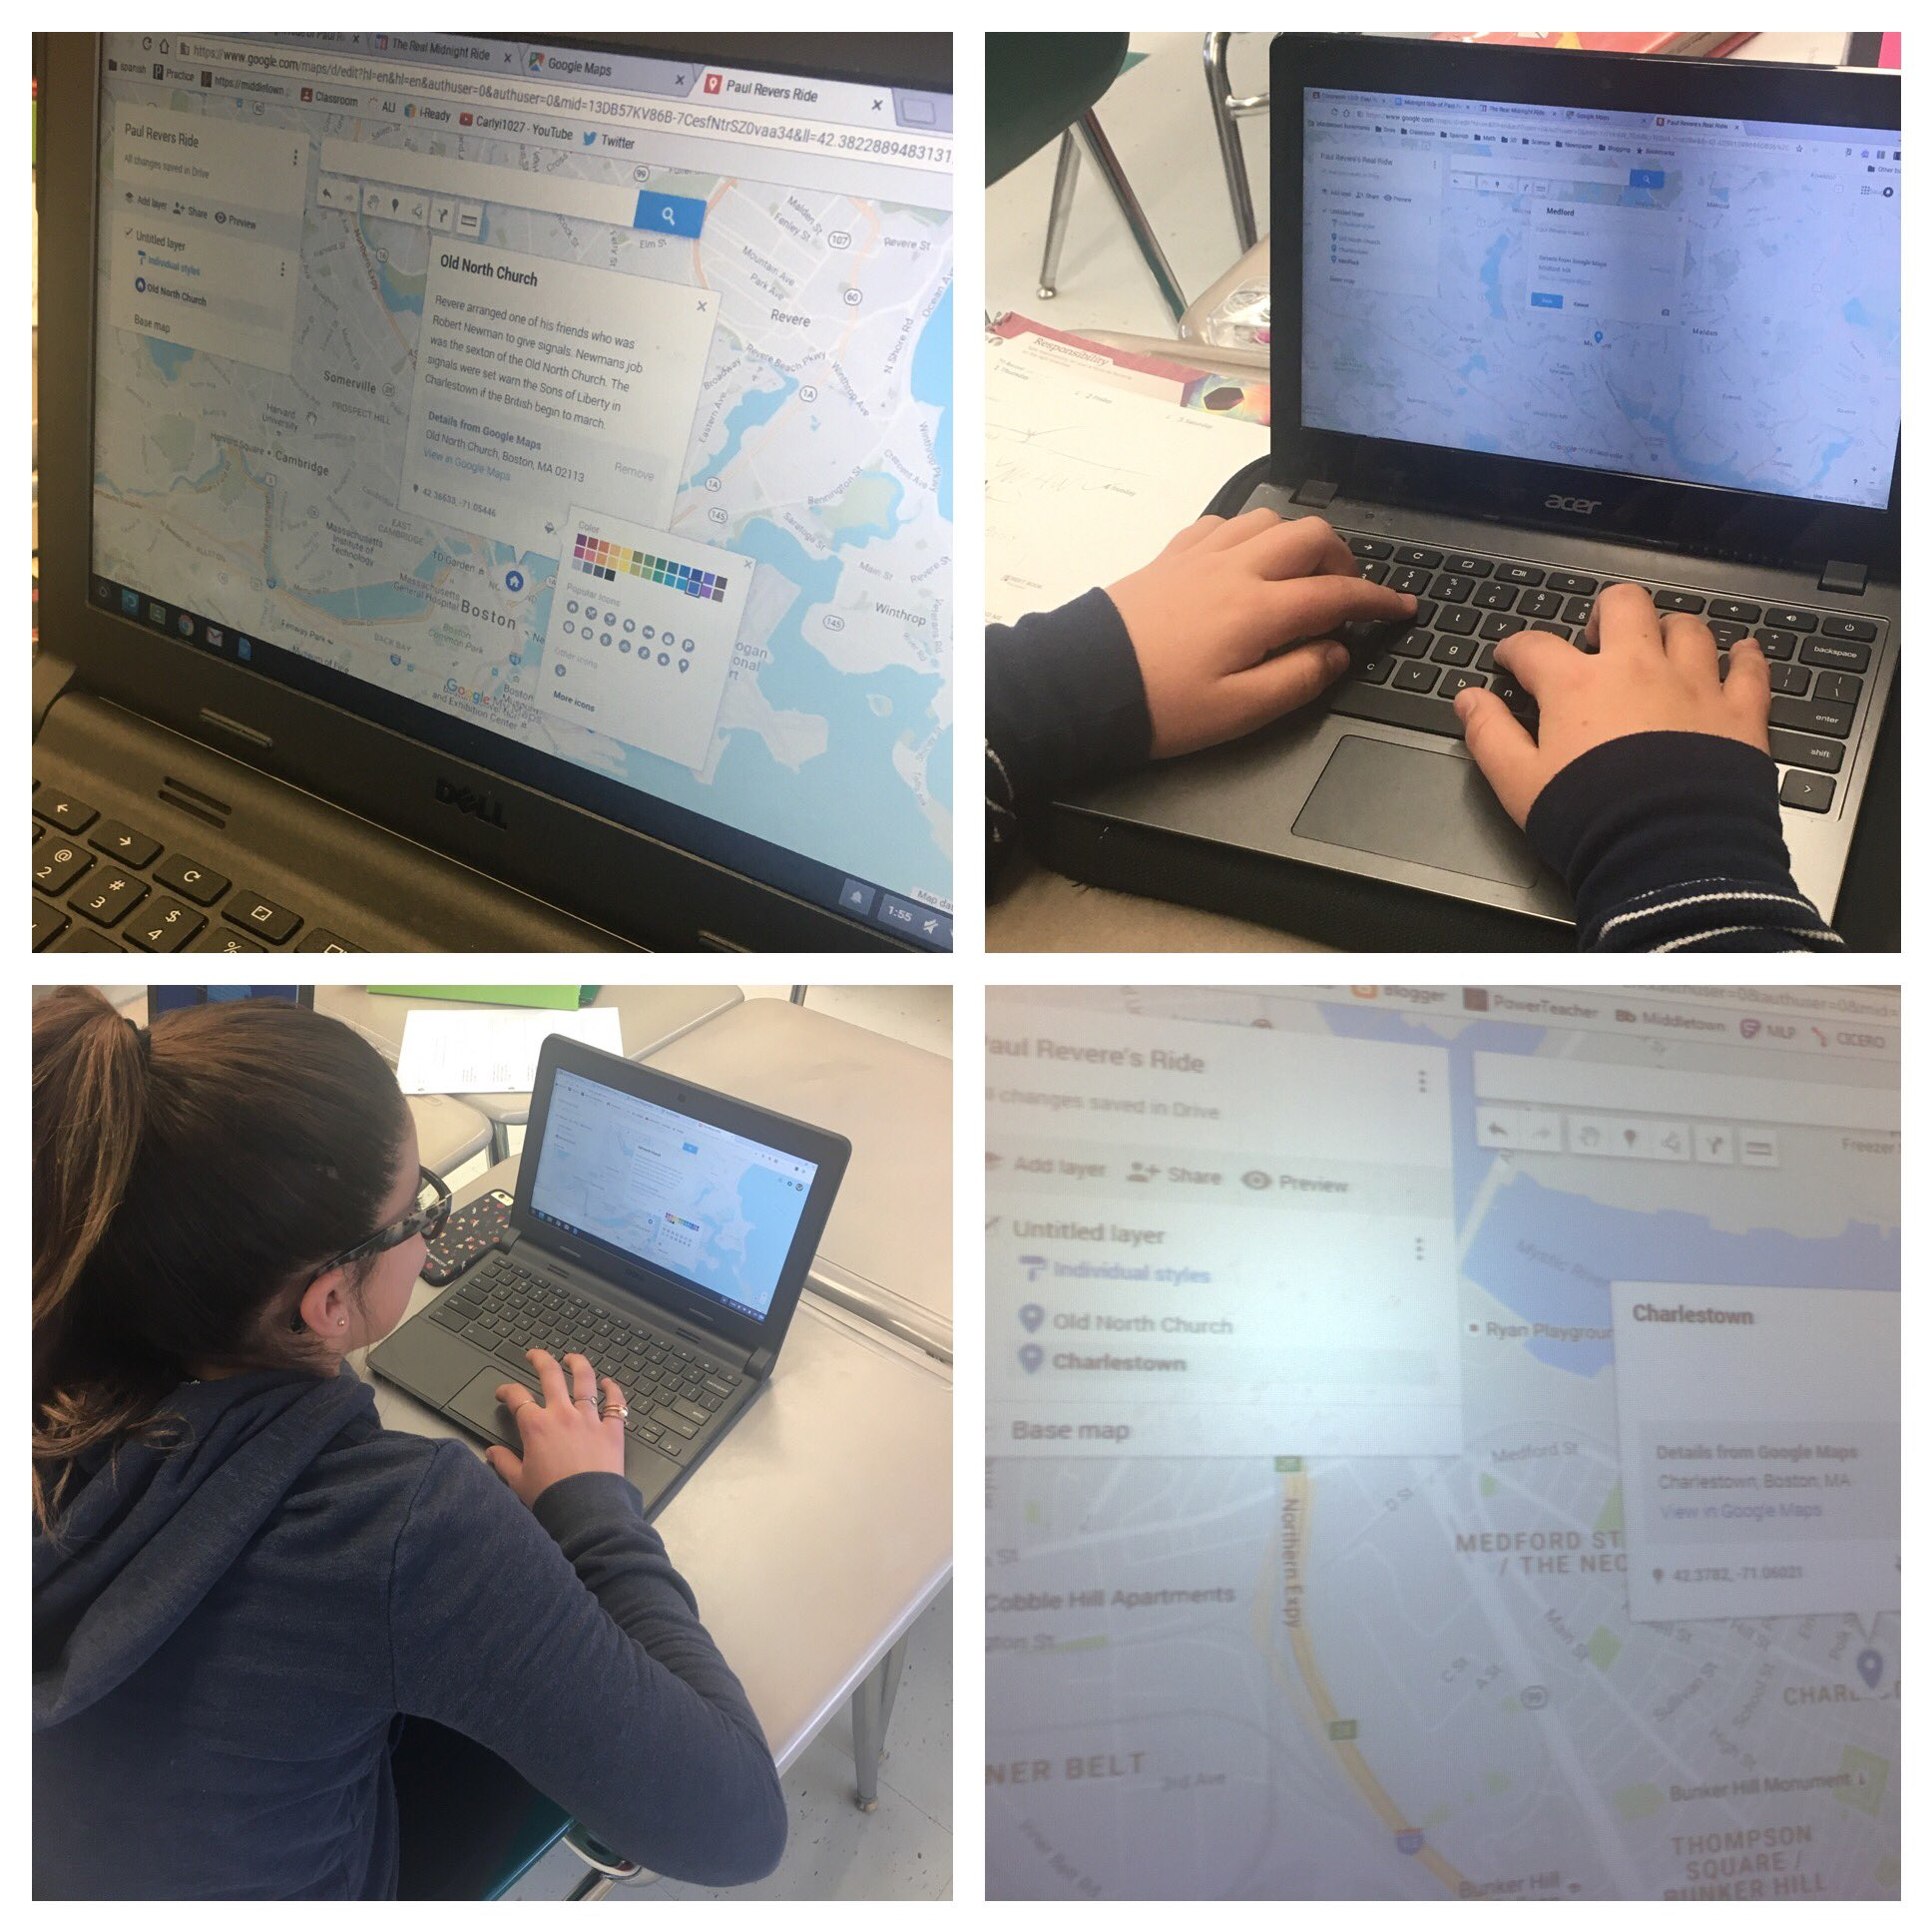 7th graders making descriptive Google Maps of the midnight ride routes of Paul Revere, William Dawes and Samuel Prescott! #MTPSPride https://t.co/i1EBrx7McJ